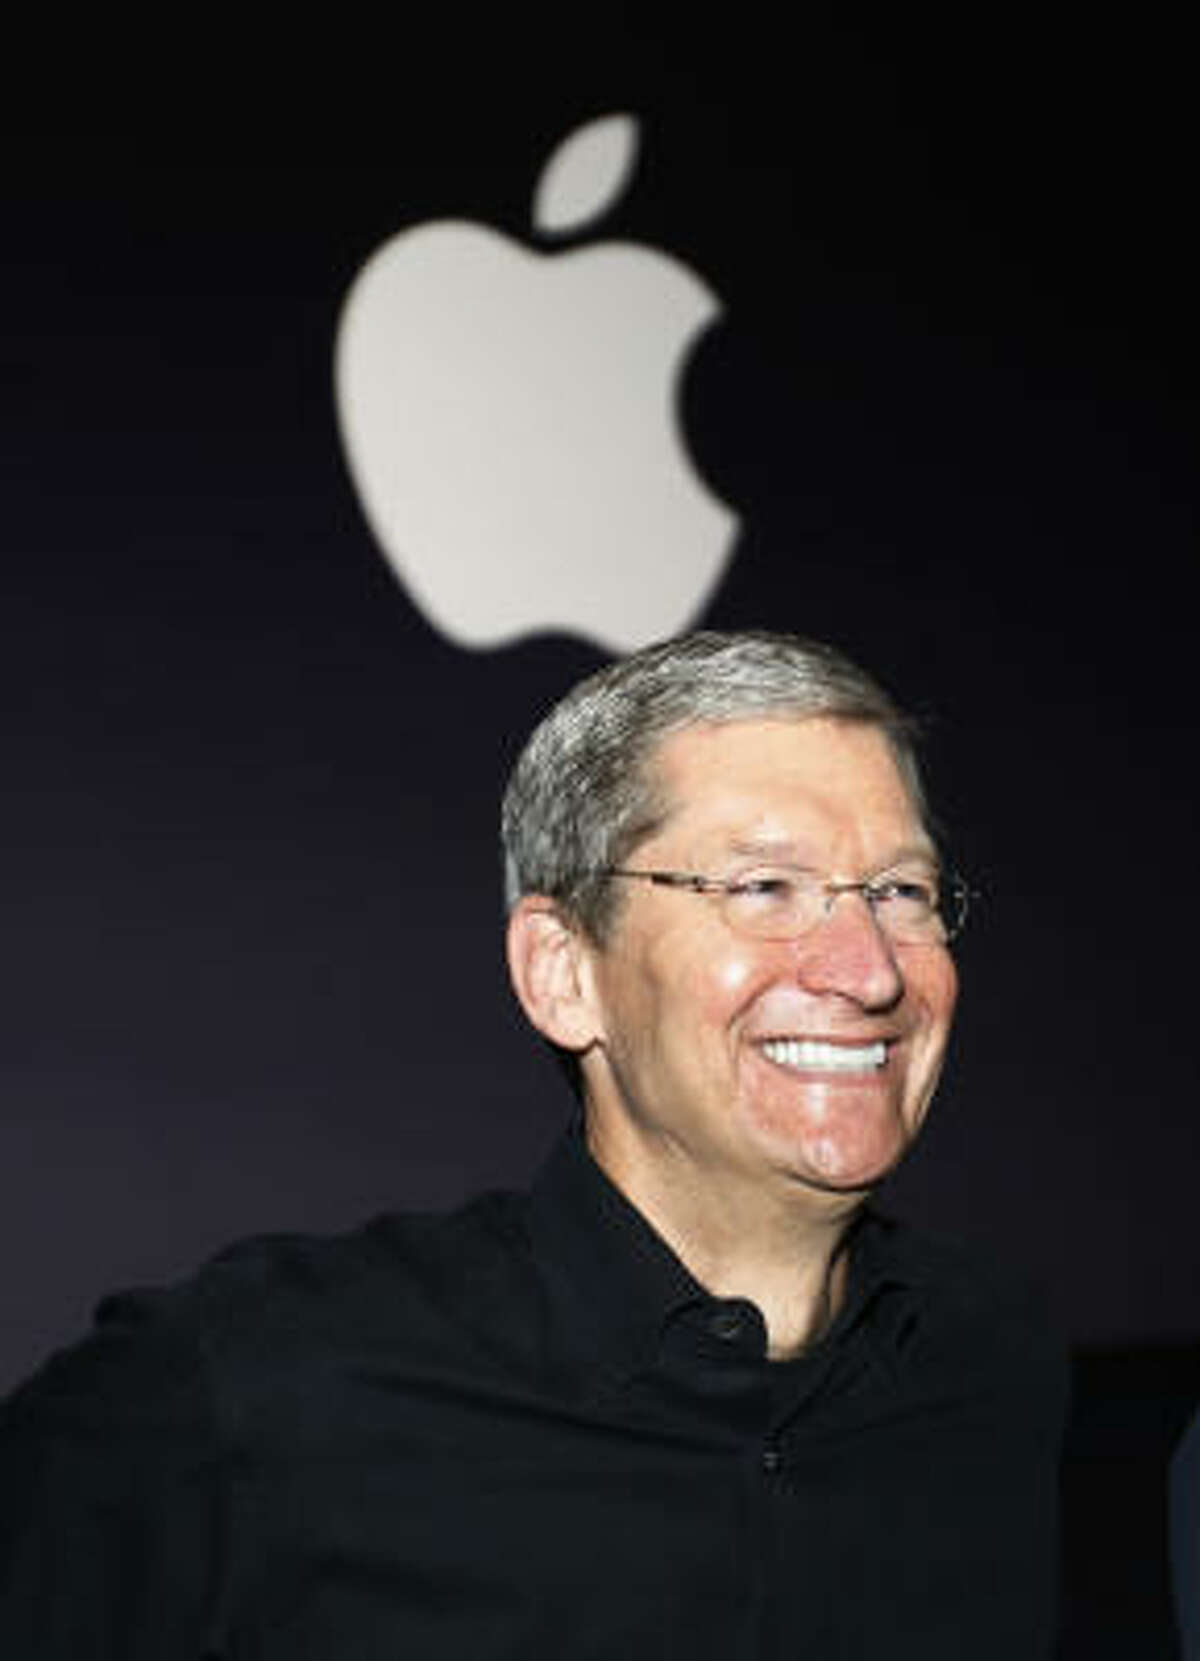 #1. Tim Cook, COO/Acting CEO of Apple